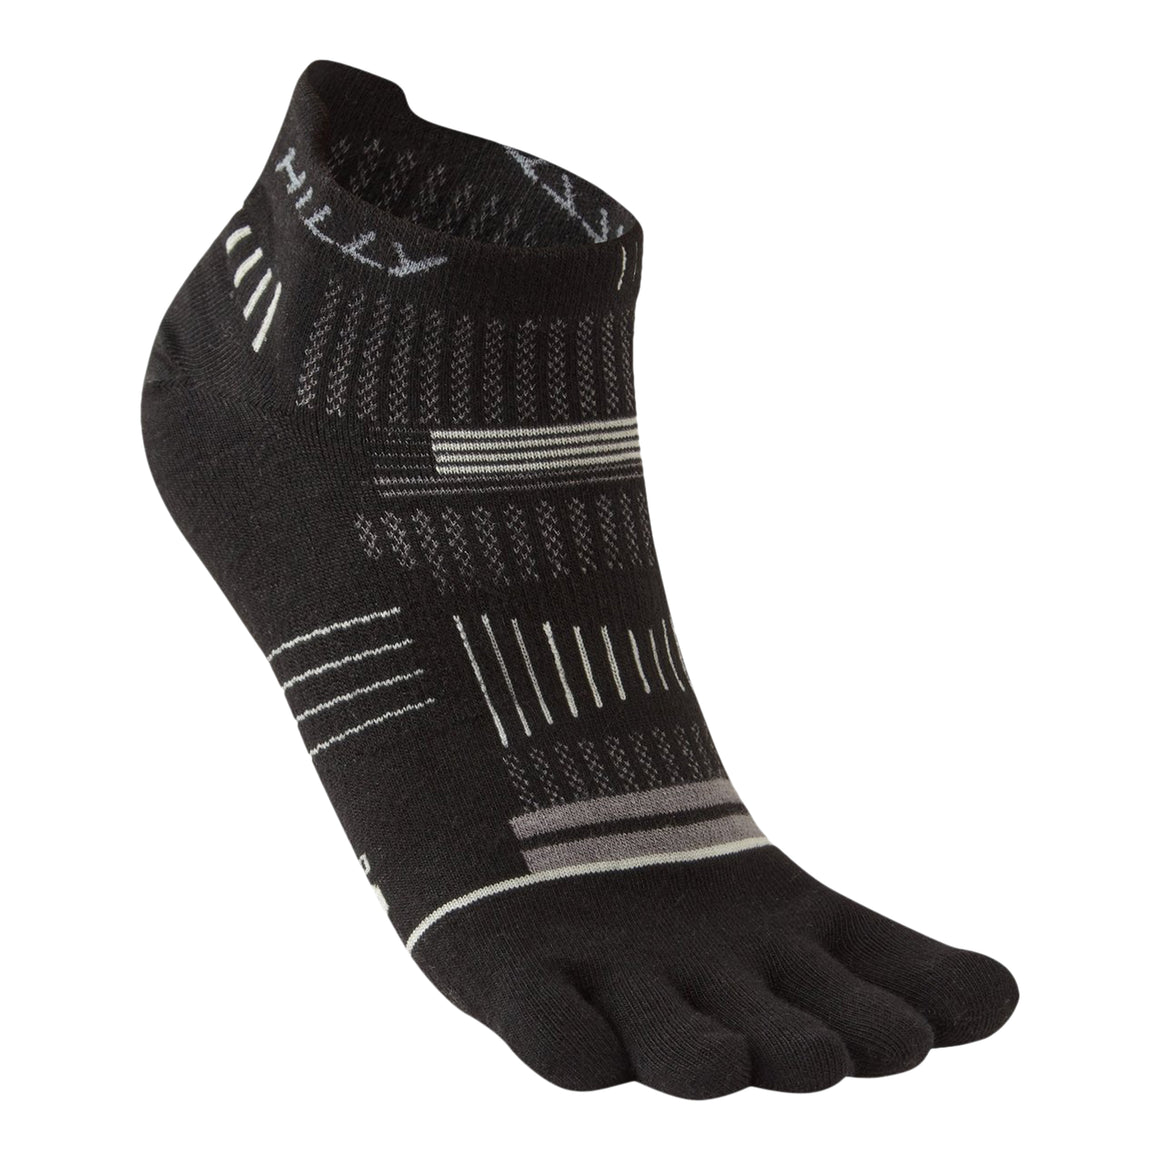 Unisex Toe Sock Socklet in Black/Grey/Light Grey